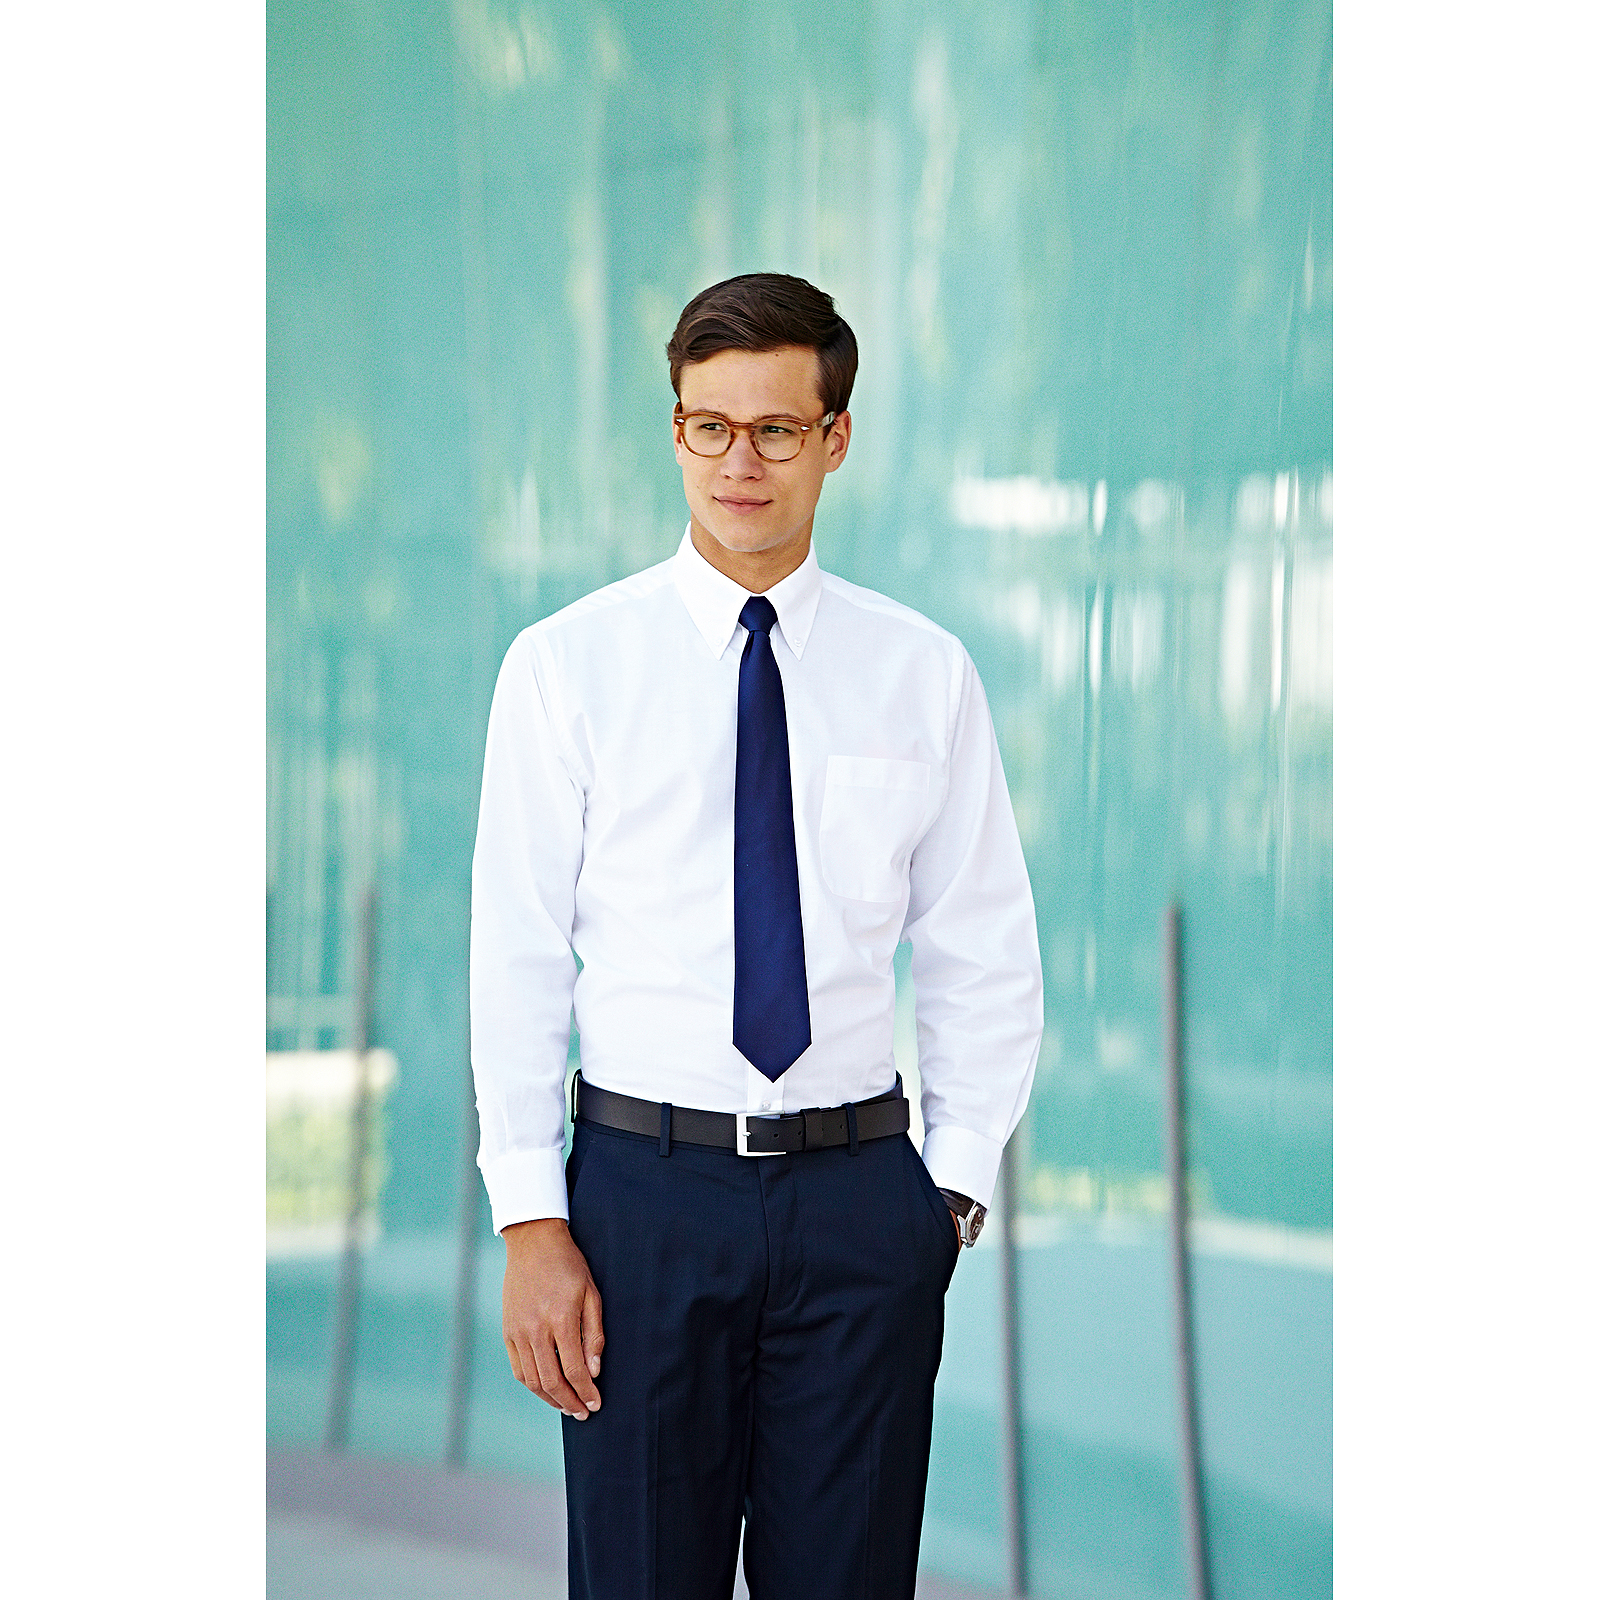 Details about Fruit of the Loom Long Sleeves Oxford Shirt Mens Plain Office Wear Formal Shirts